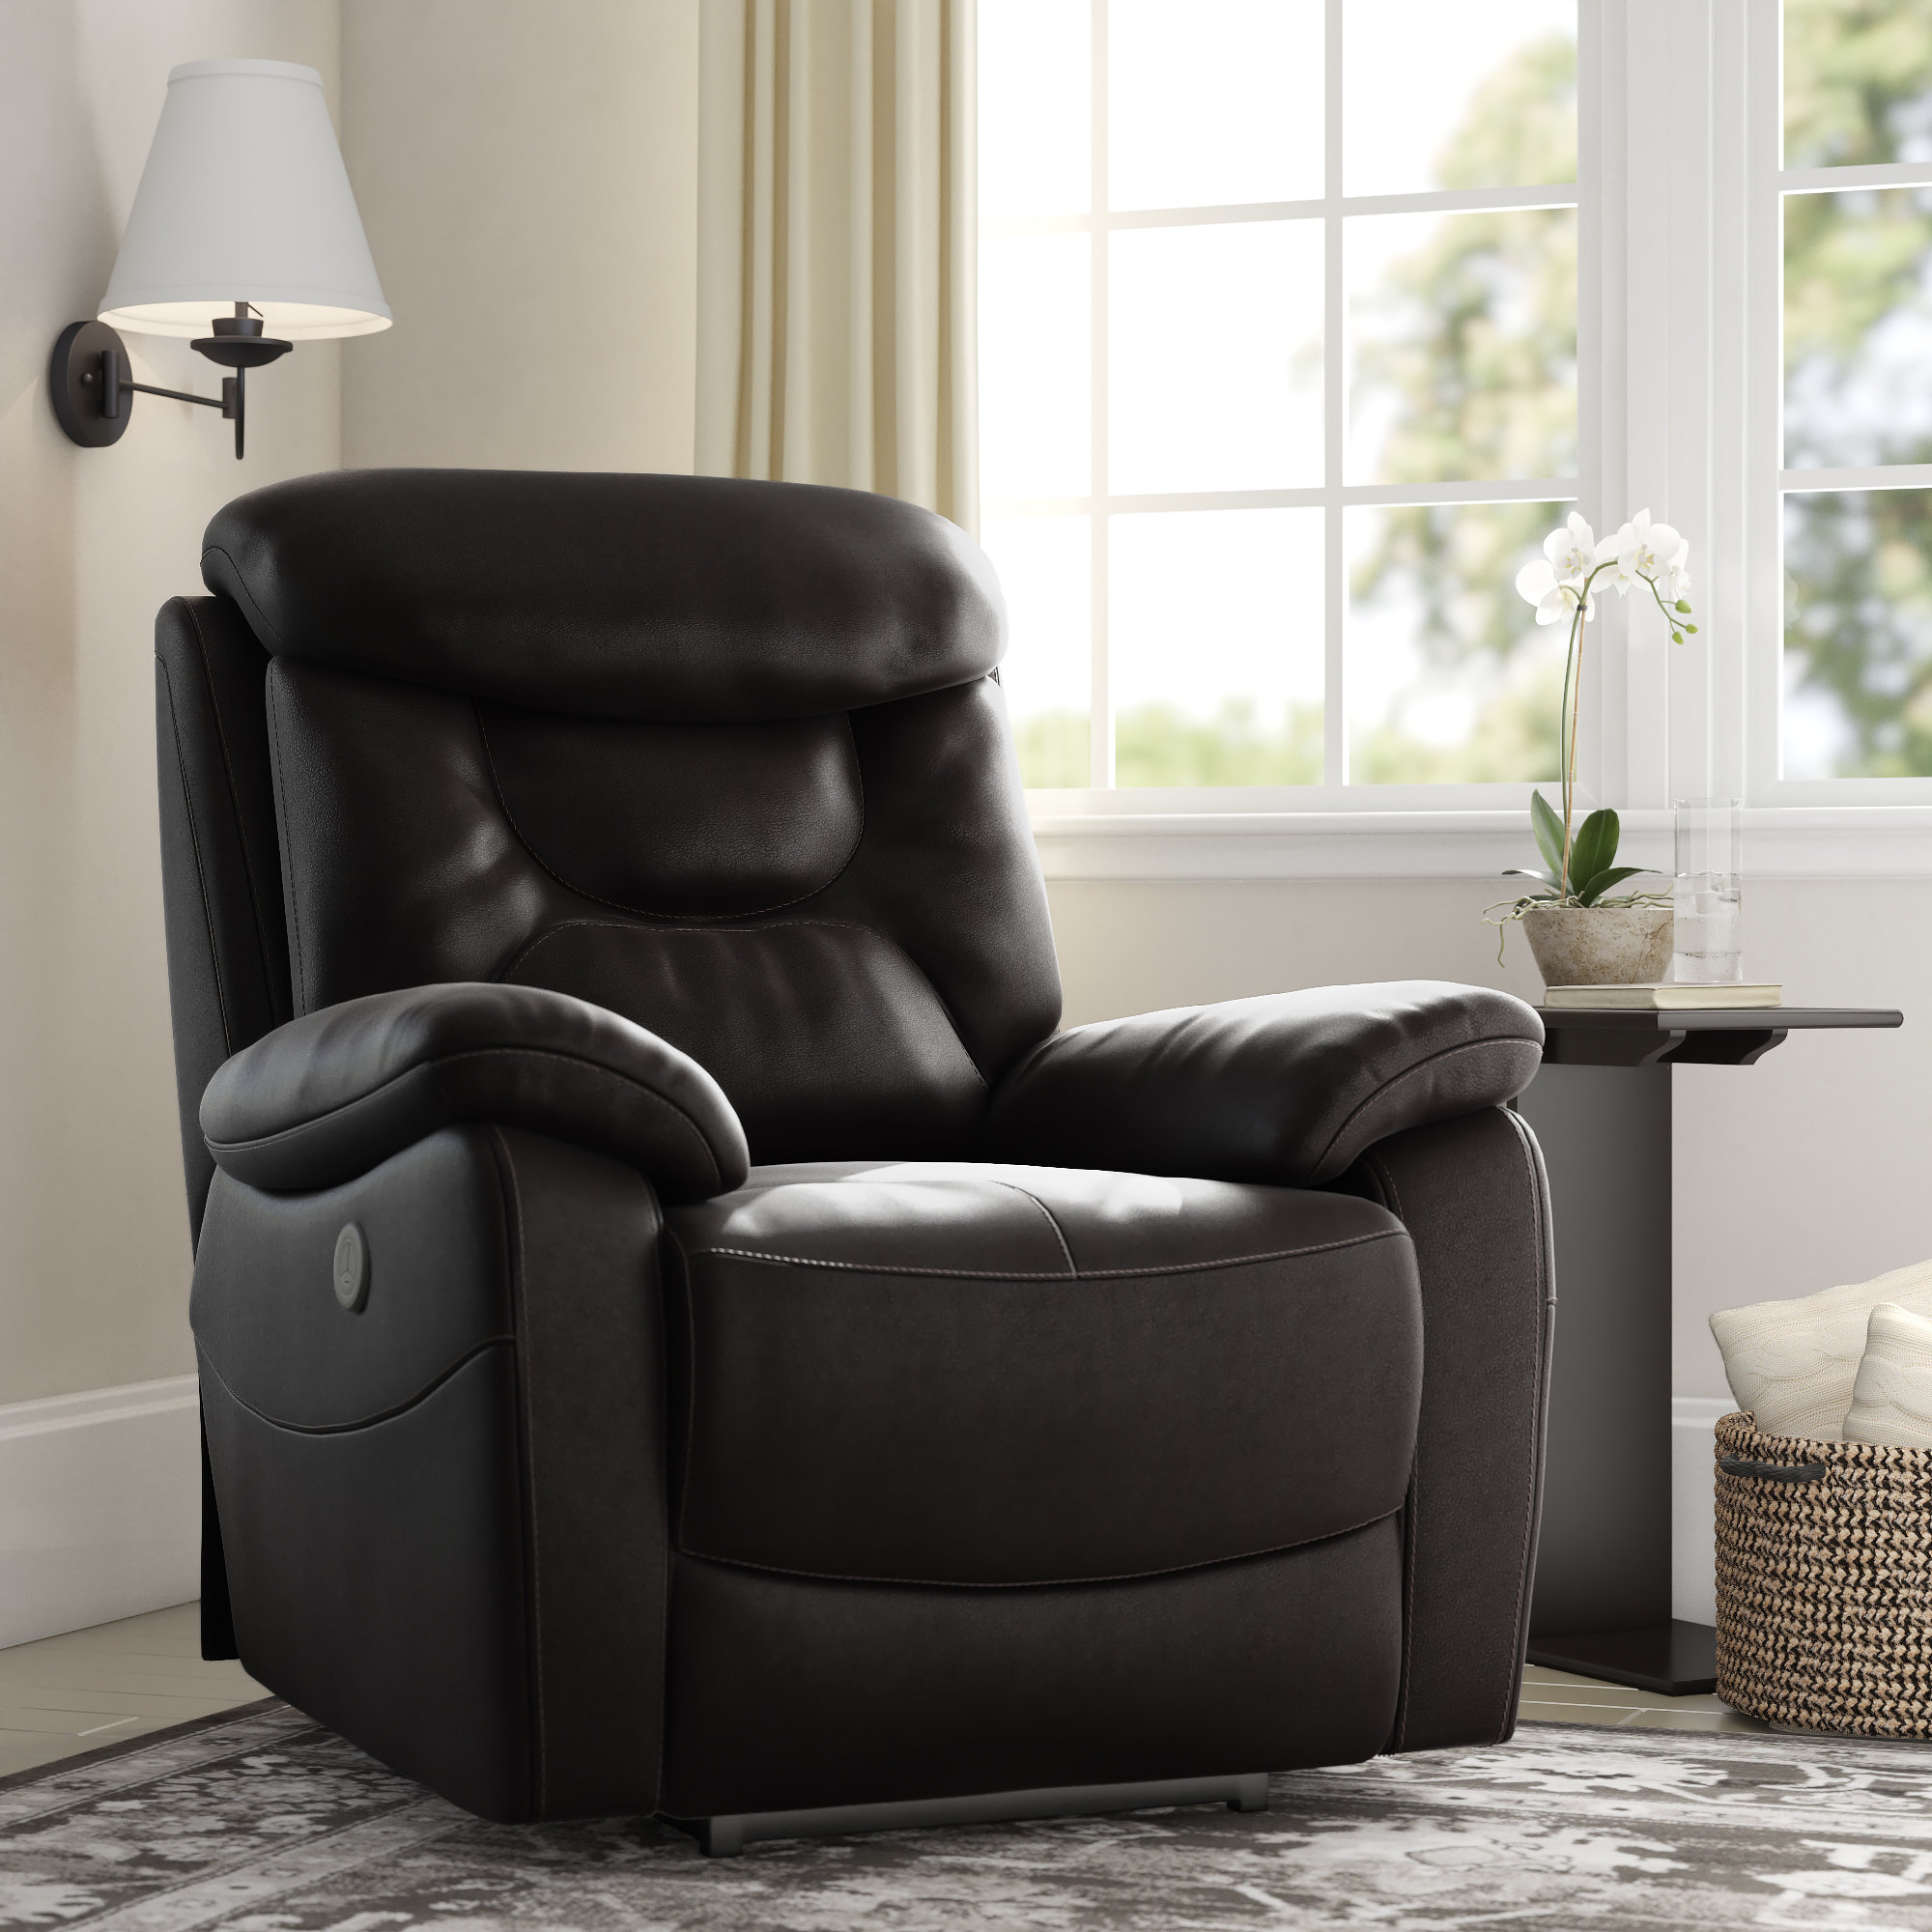 Red Barrel Studio Oh Leather Power Recliner & Reviews | Wayfair For Cohen Foam Oversized Sofa Chairs (View 11 of 25)